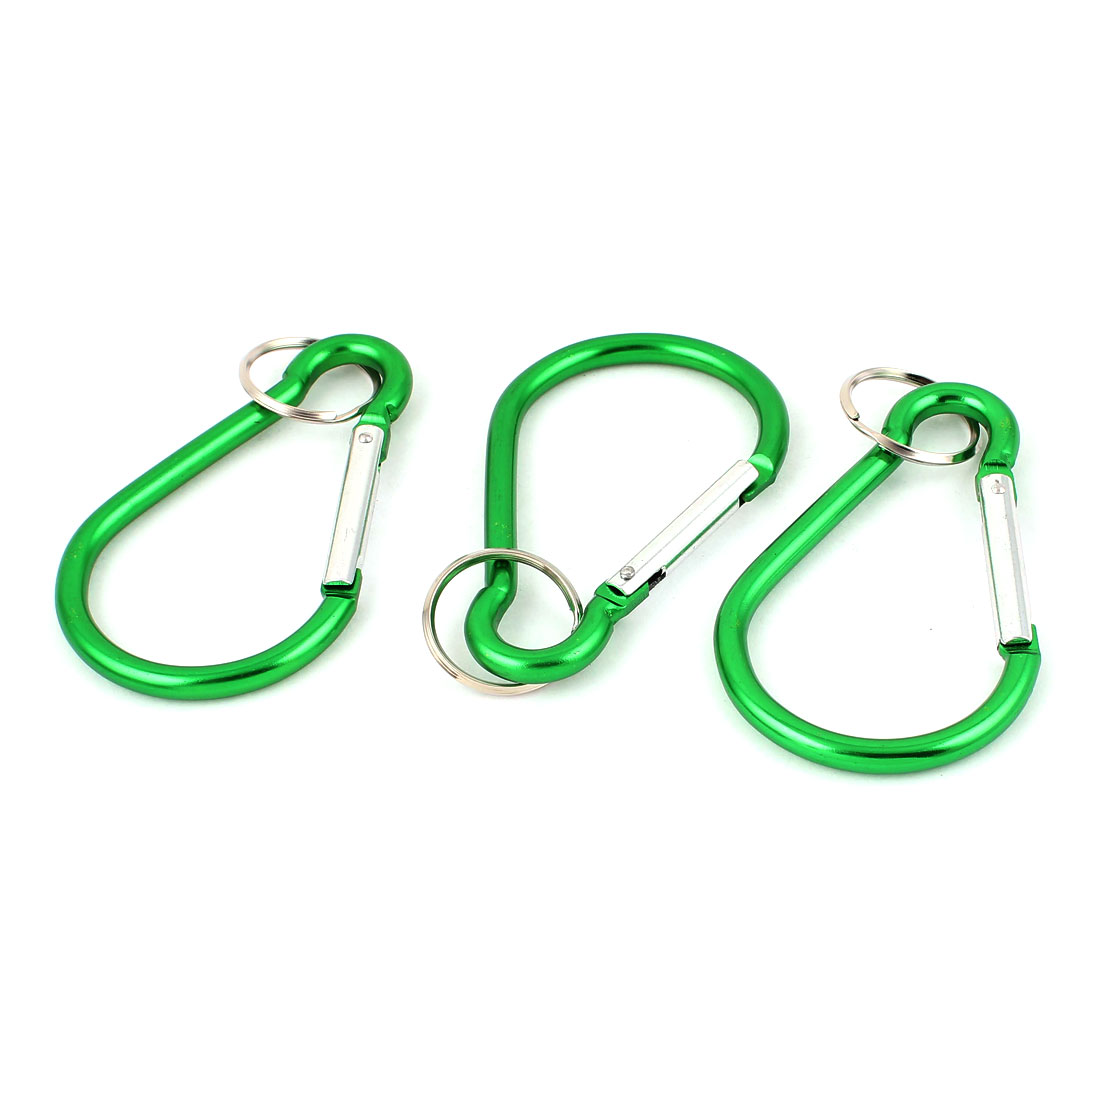 Outdoor Camping Metal Carabiner Spring Loaded Clips Hike Hook Key Chain 3pcs Green